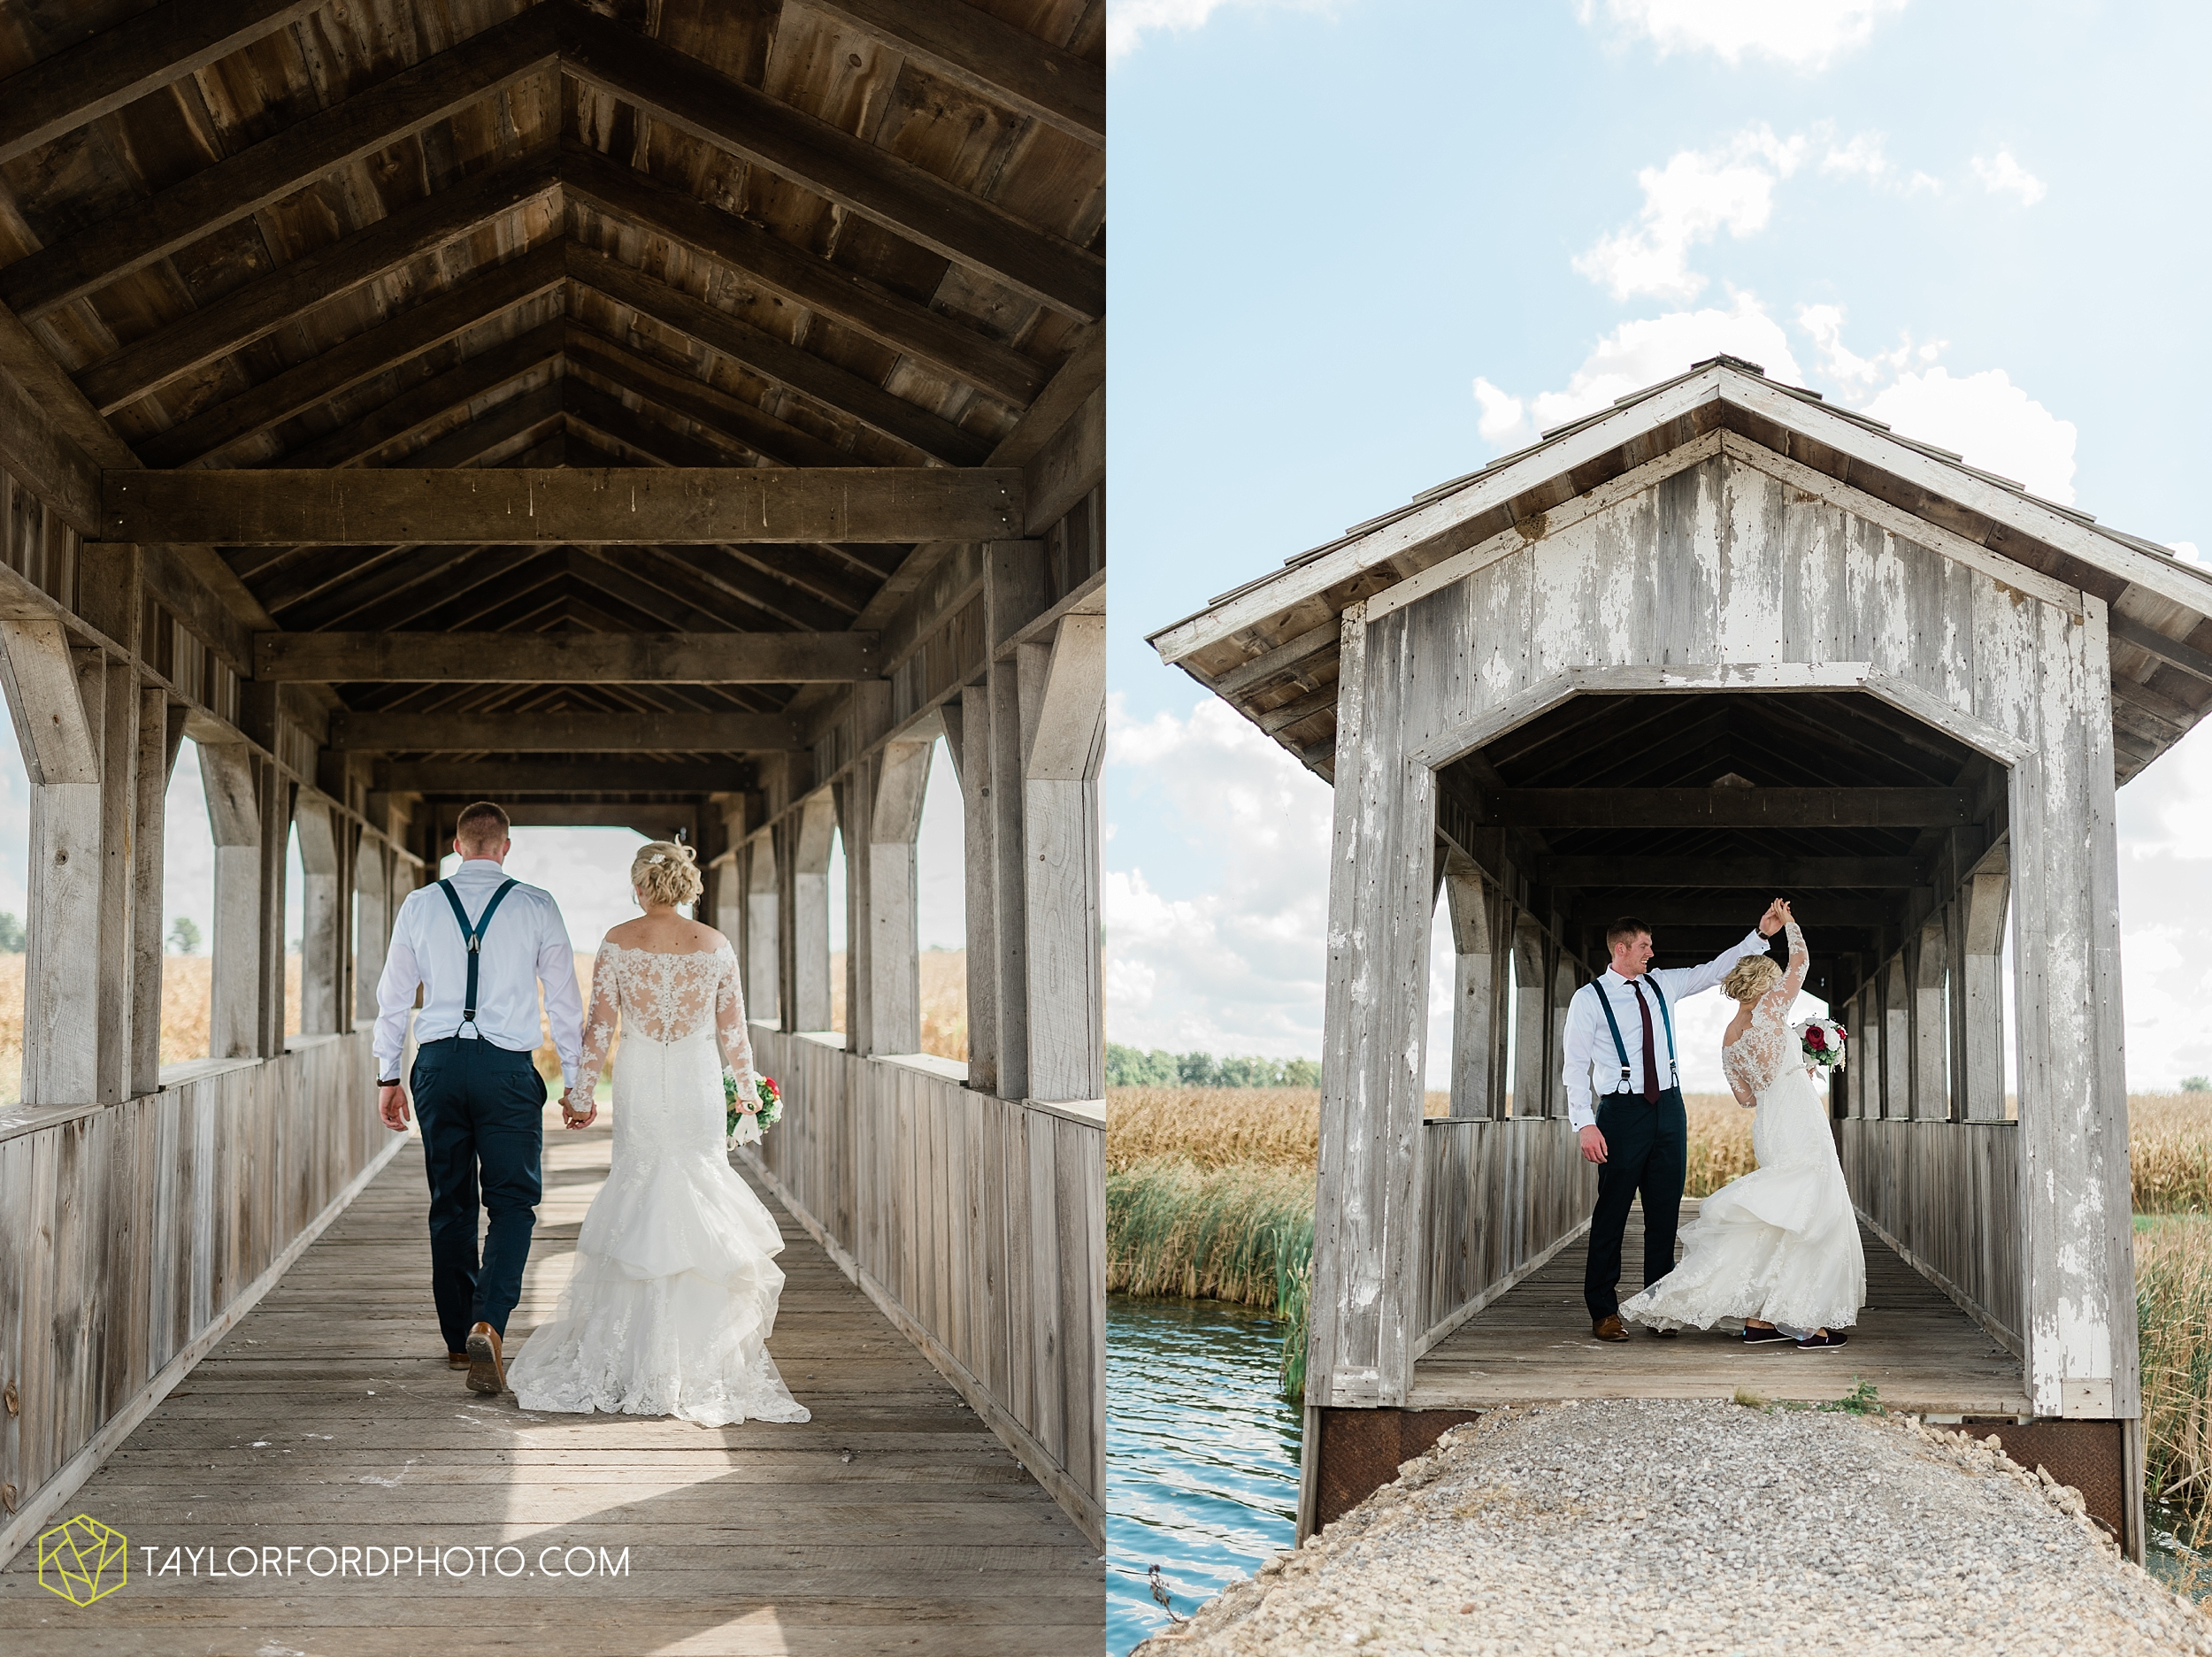 gayle-rayman-mike-steele-ottoville-ohio-wedding-immaculate-conception-parish-center-wedding-sycamore-lake-winery-wannamachers-photographer-taylor-ford-photography_0408.jpg